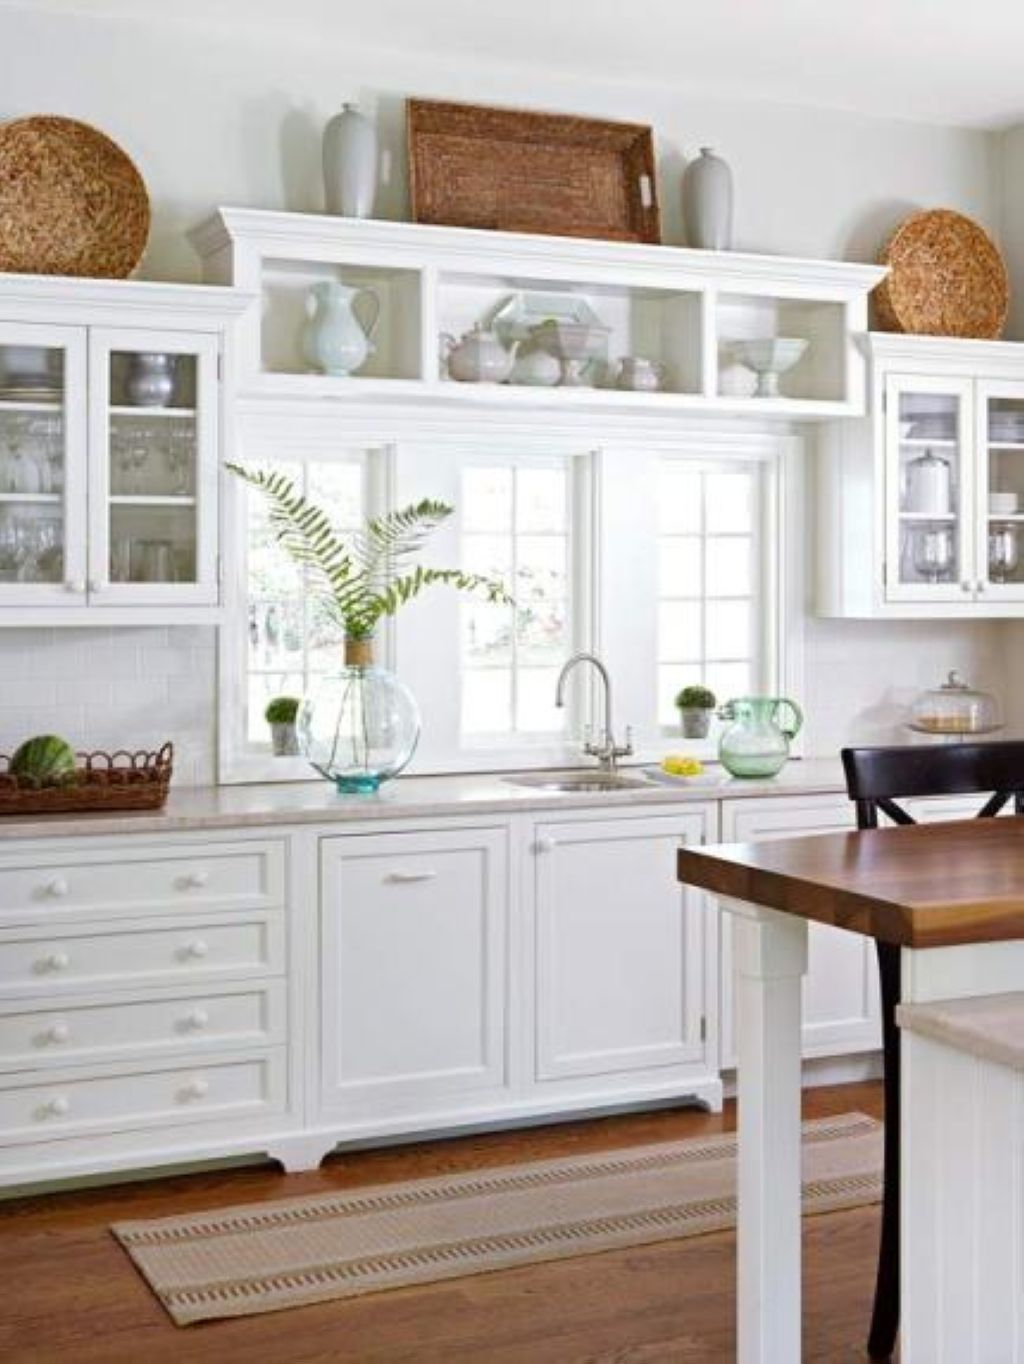 49 Stylish Ideas for Decorating Above Kitchen Cabinets   Decorating ...